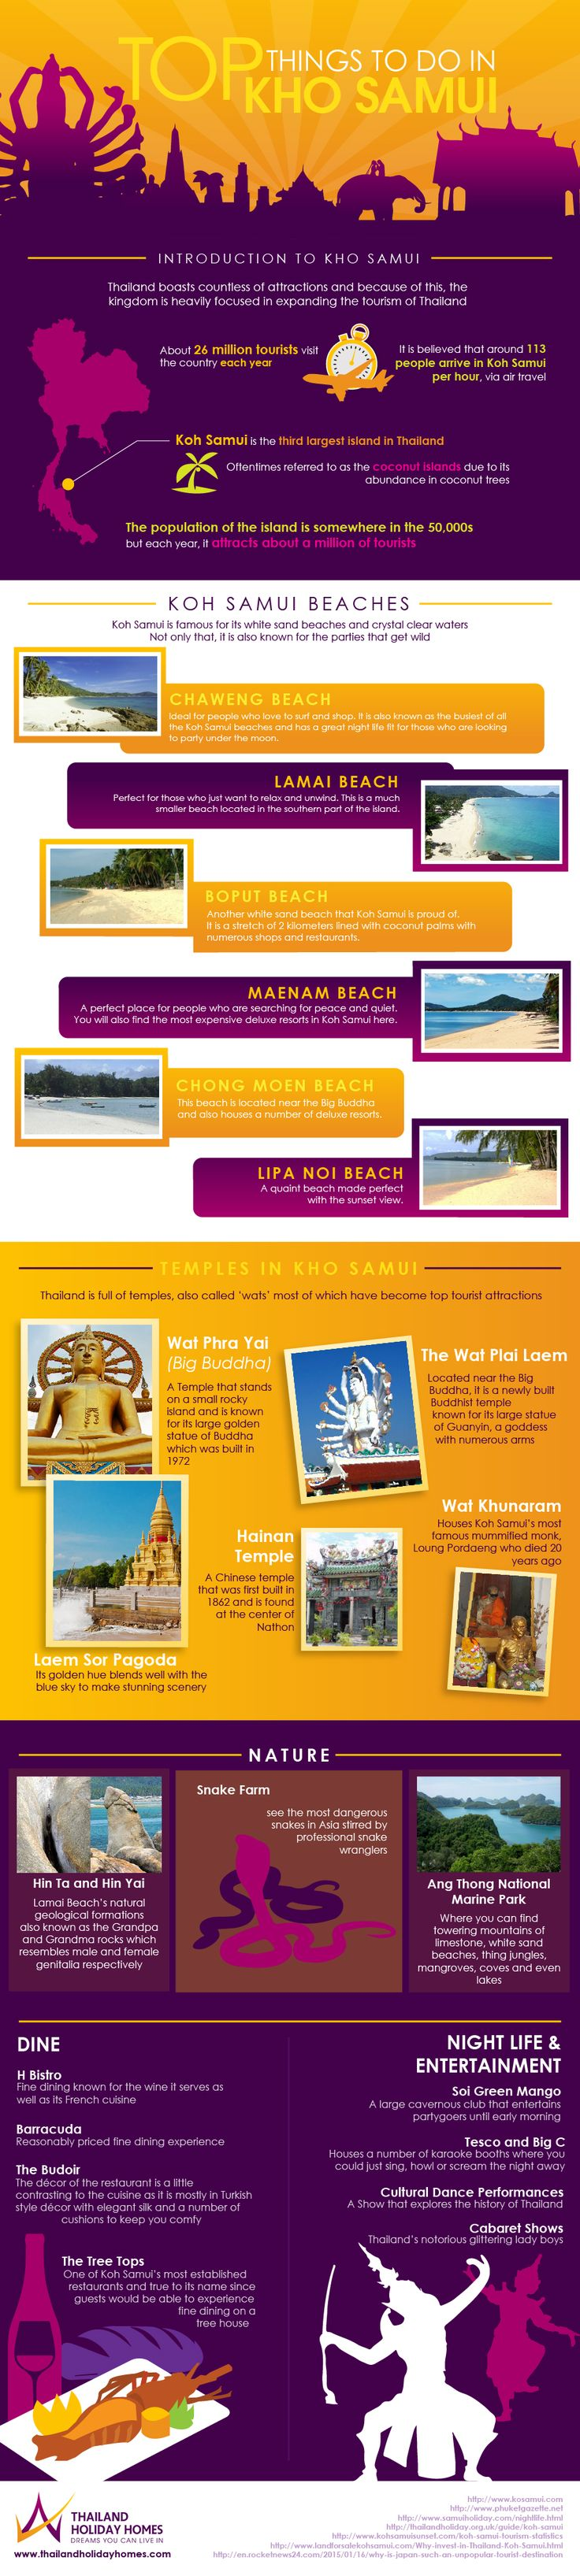 Things to do in Samui - Take a look at our Helpful Infographic and Explore the Island of Koh Samui The team at Thailand Holiday Homes is always looking for ways that we can help make your stay in this kingdom of smiles a bit more fun and interesting.